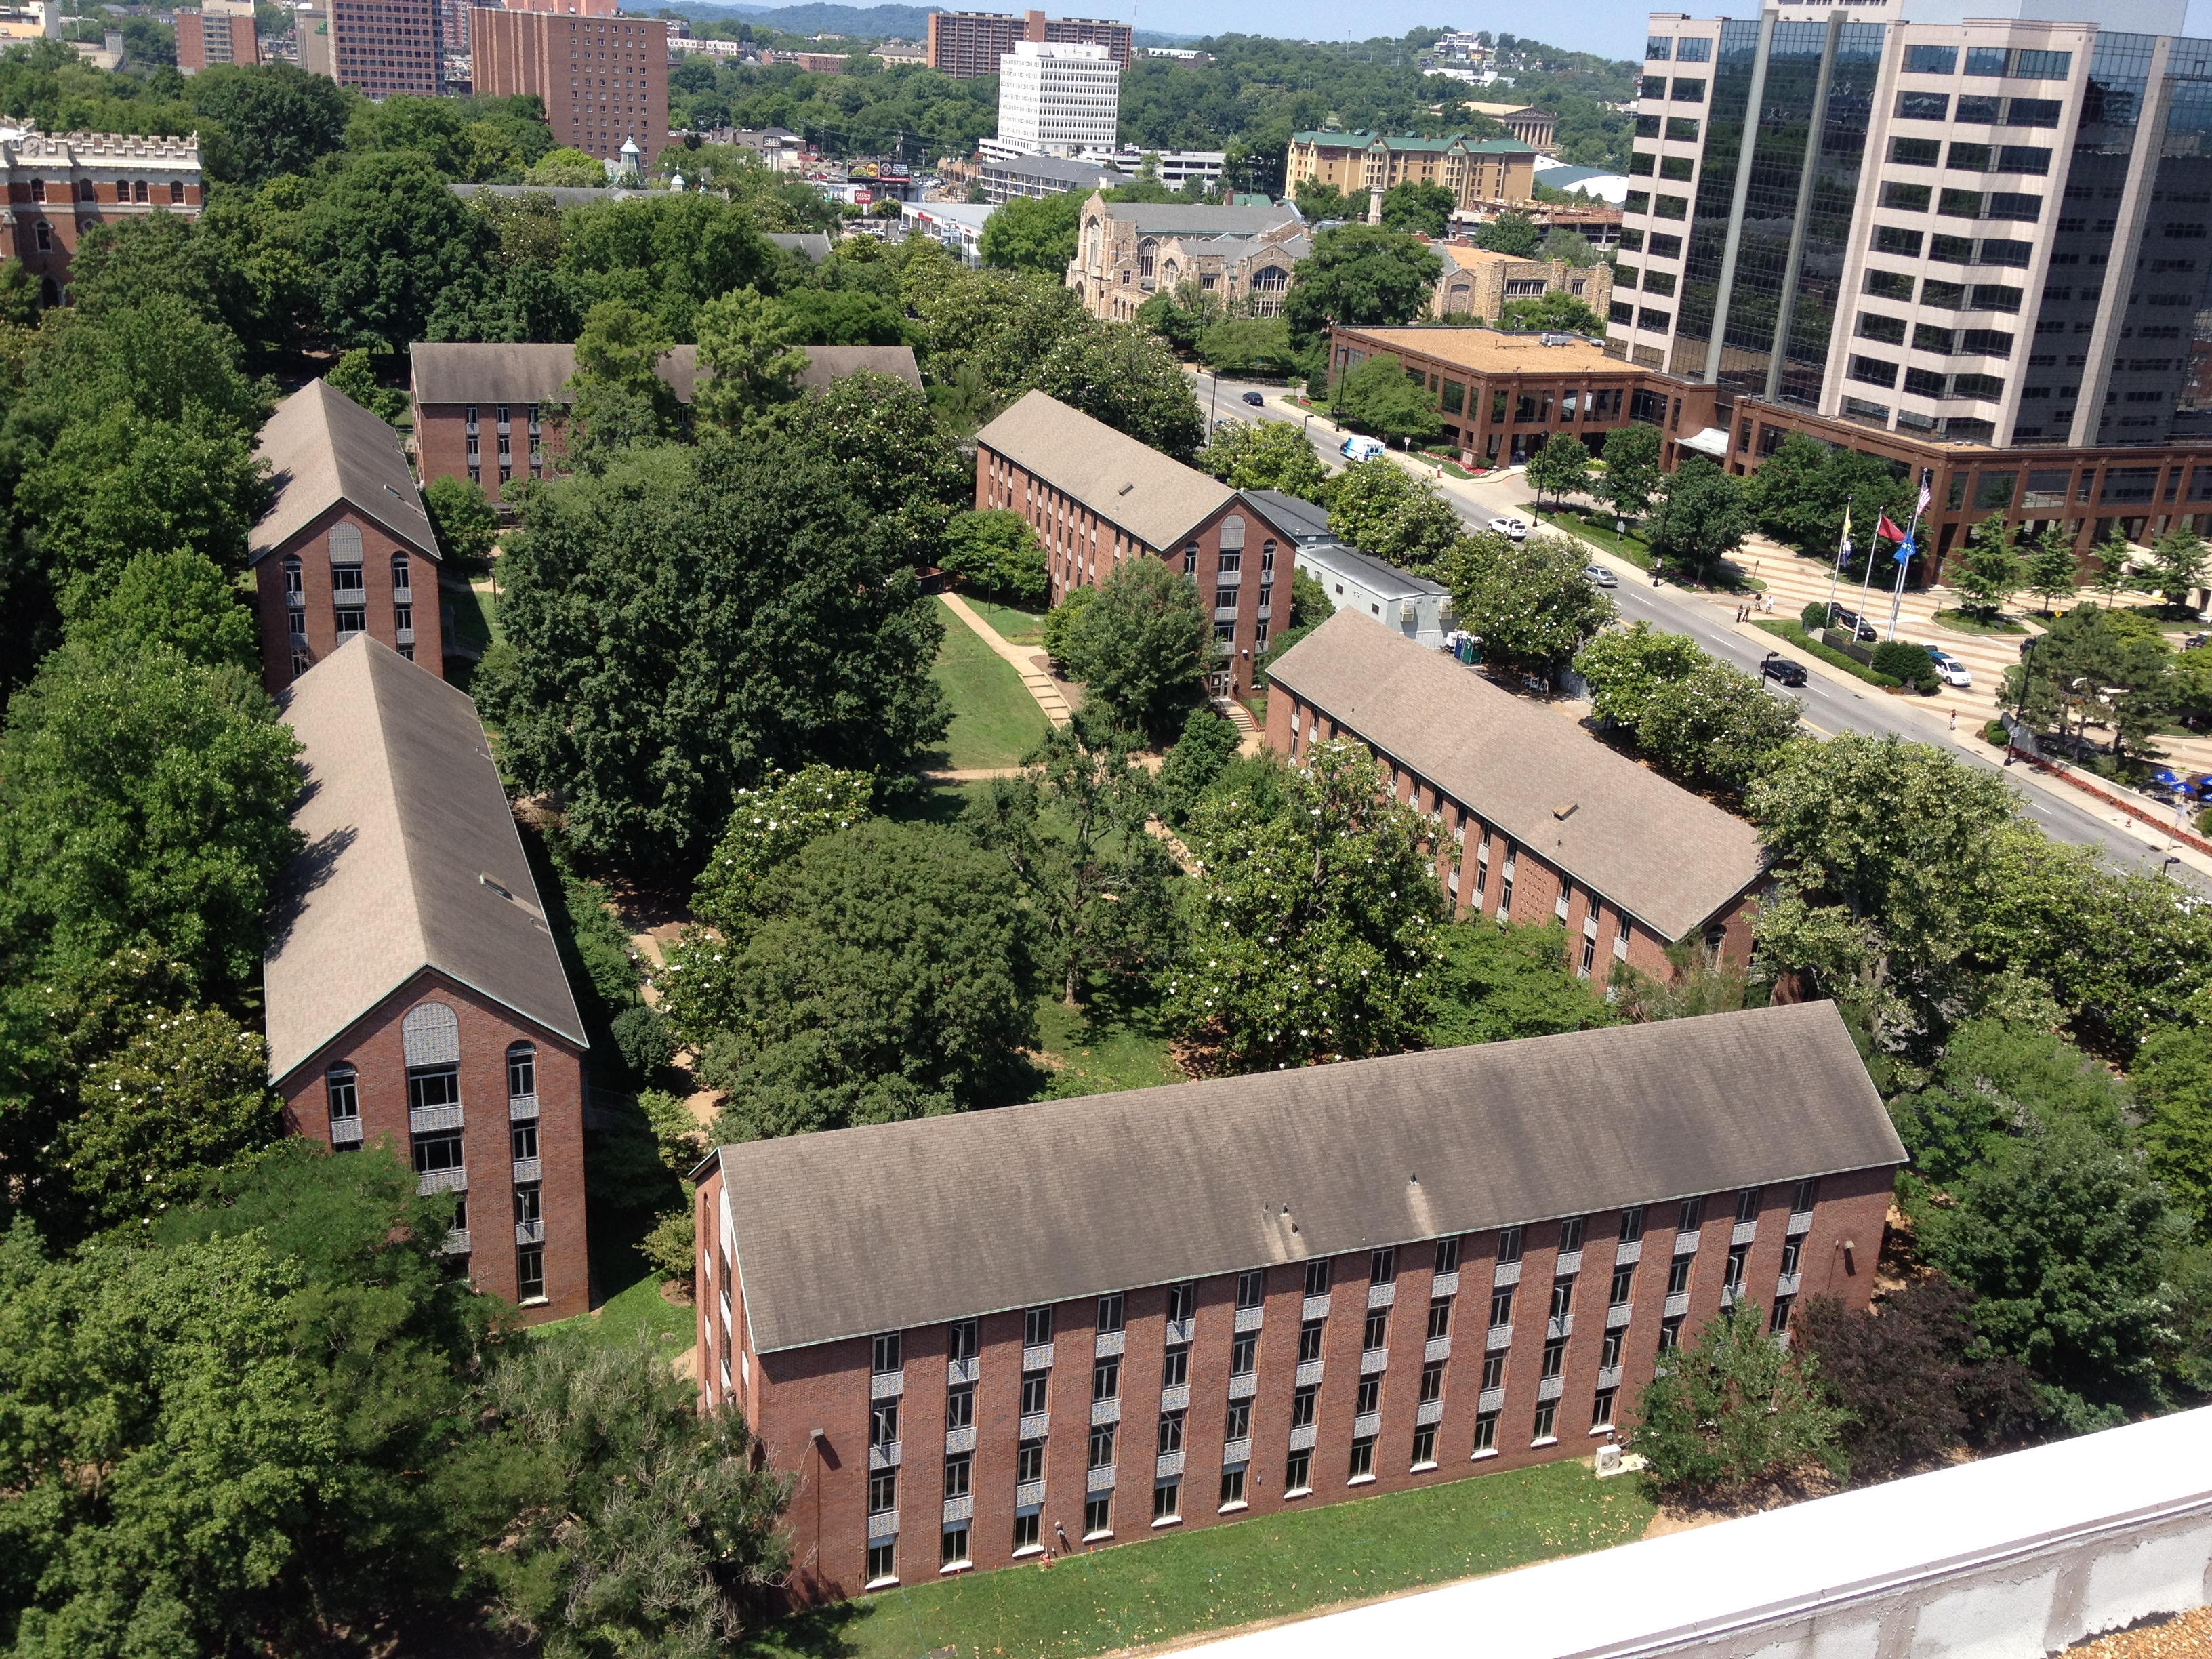 Kissam Quad, College Halls, view from Baker bldg roof